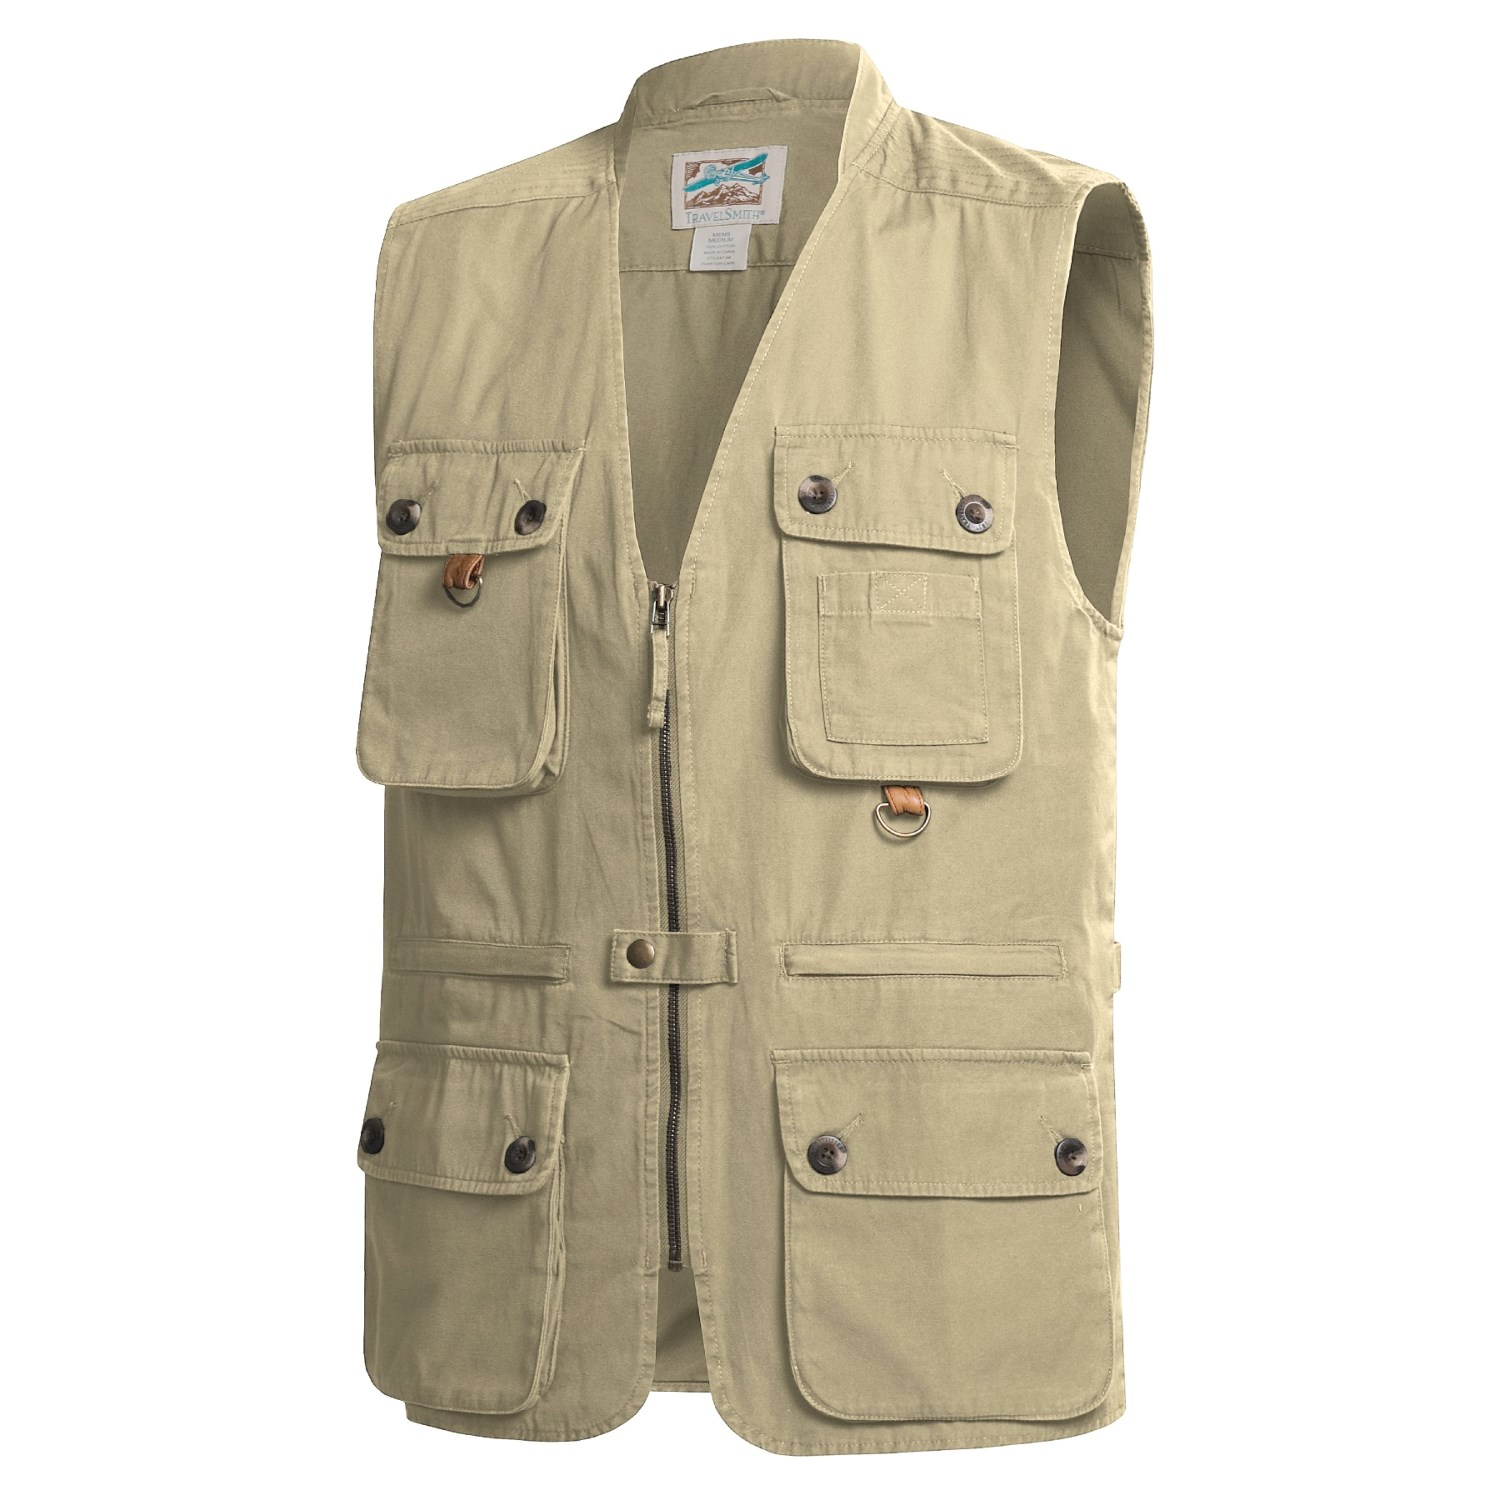 You'll be on the hunt again suited up in our Deluxe Safari Bush Jacket, a top-draw choice of professional adventurers, amateur naturalists, and outdoorsmen of all persuasions. Functional and fashionably rugged in the refined style of a late 19th century explorer, this men's jacket captures the spirit of the era/5(48).